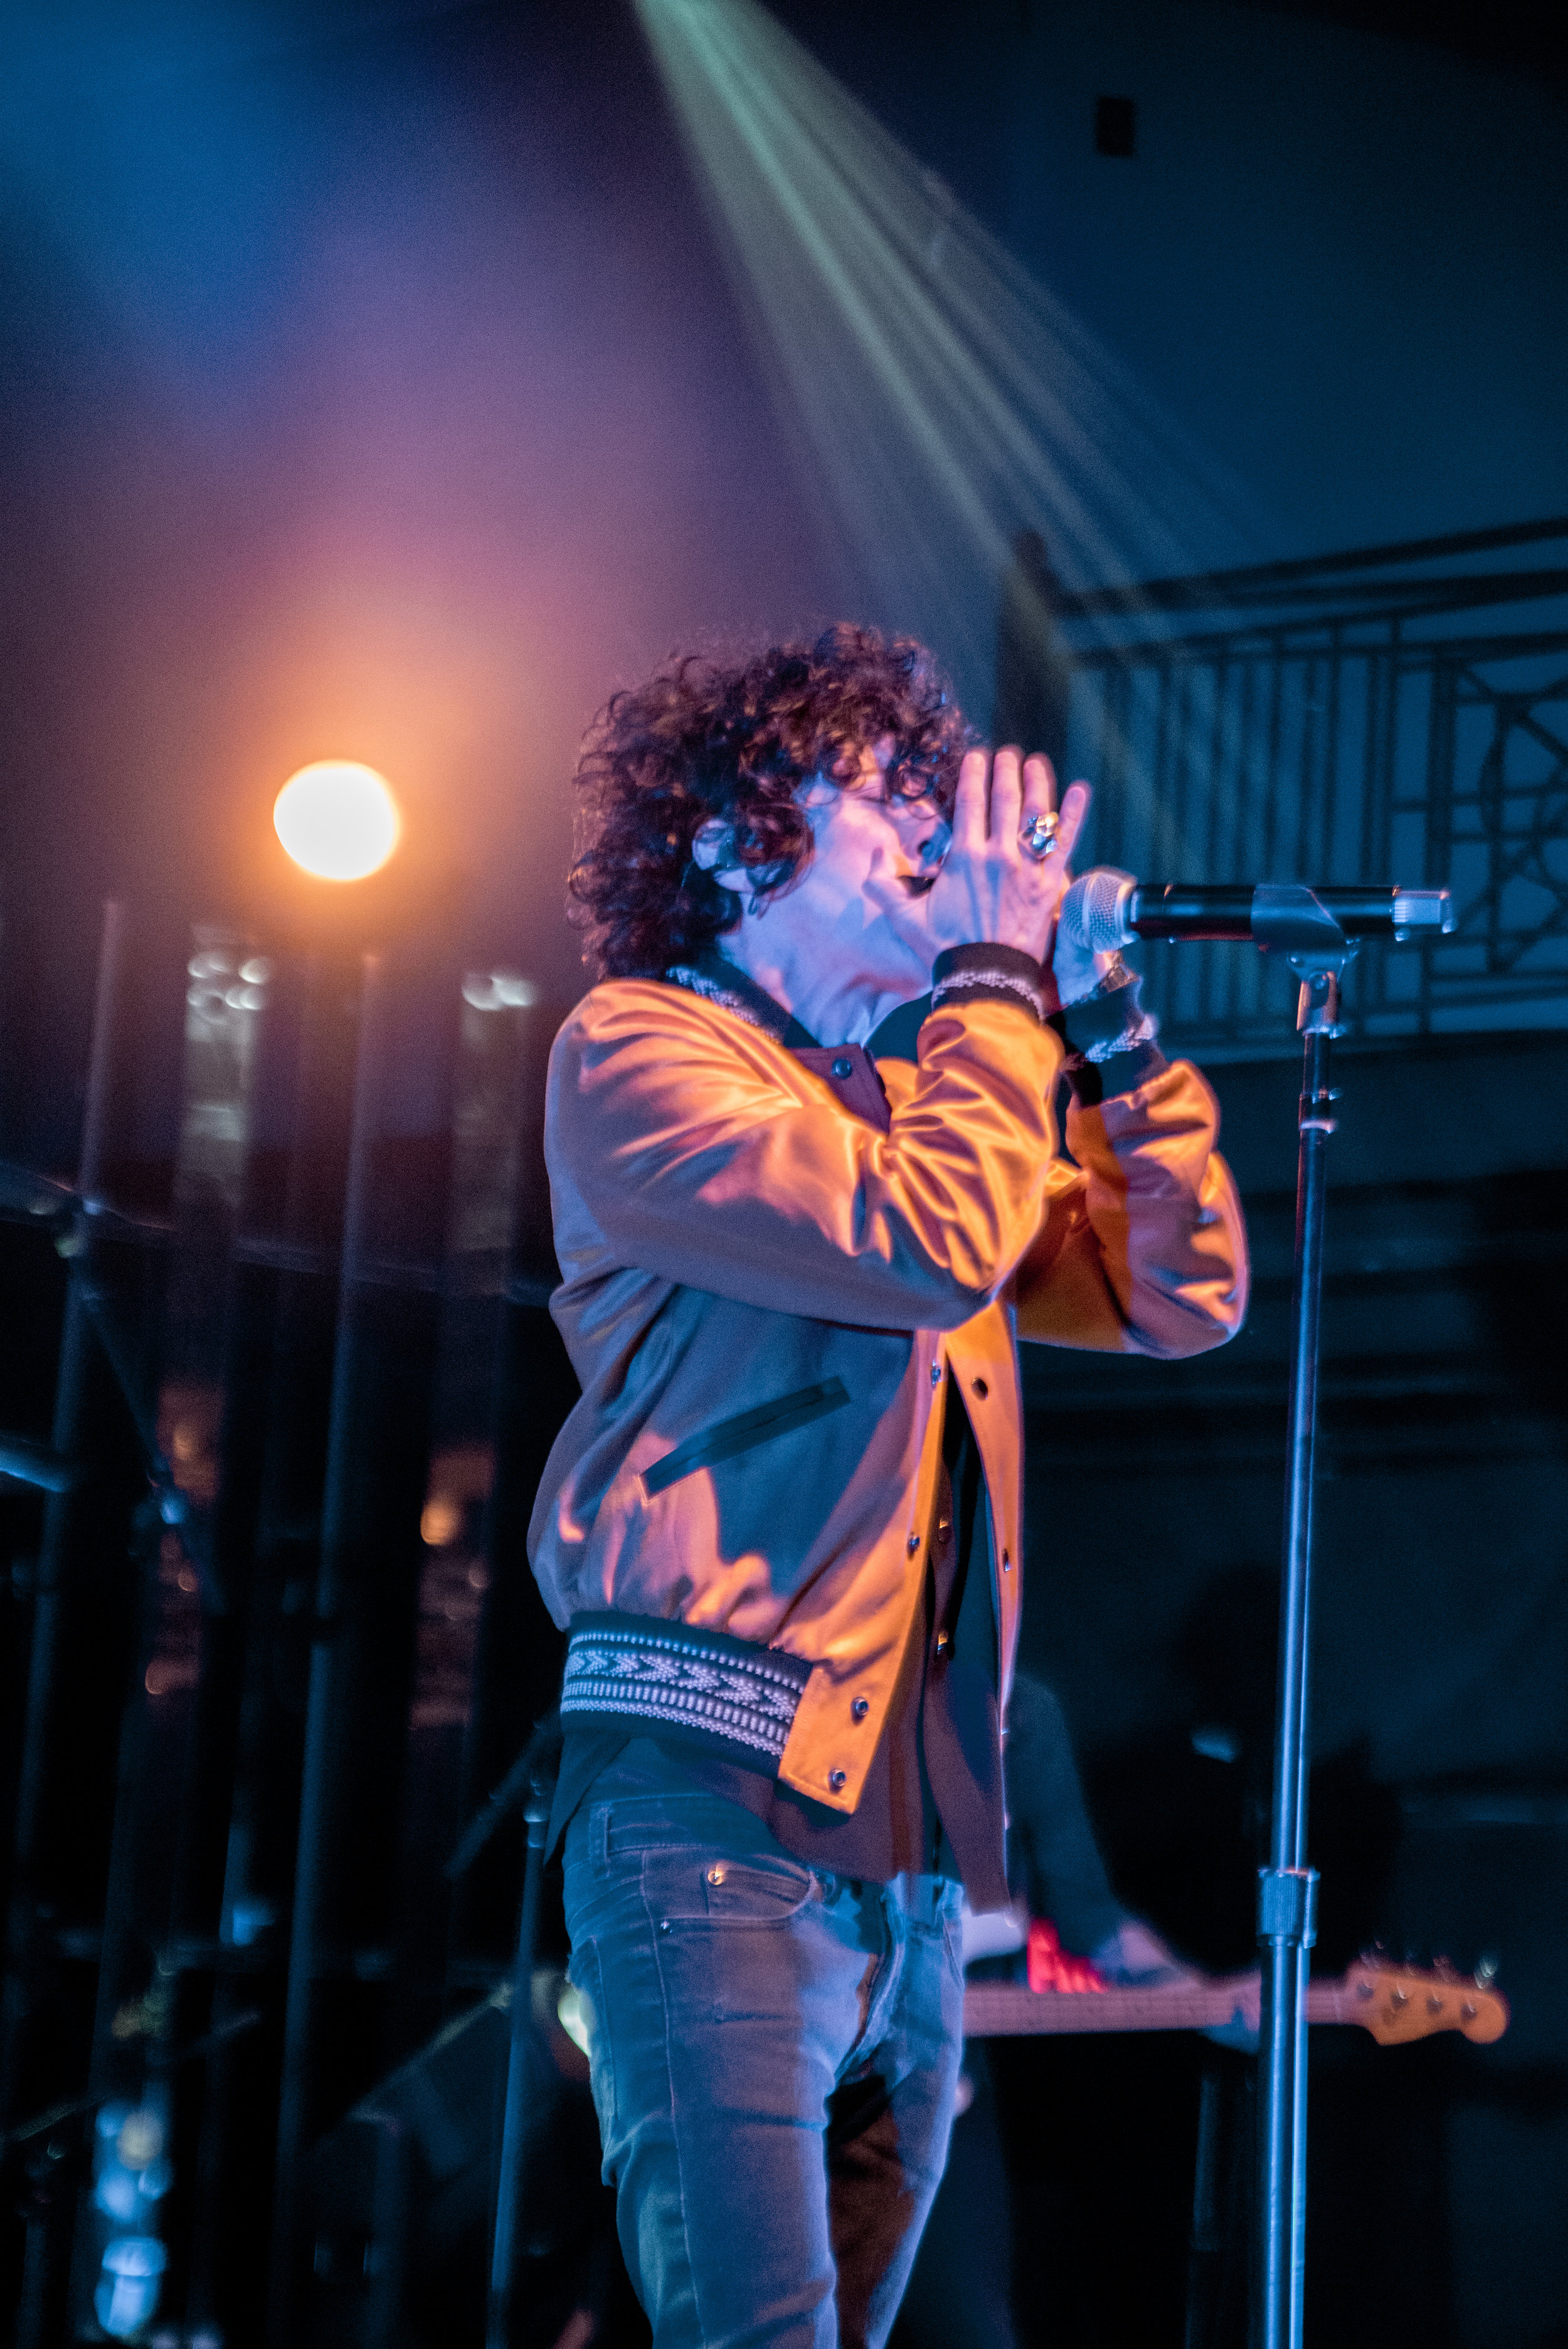 Concert Review: LP live at 930 Club in Washington, DC